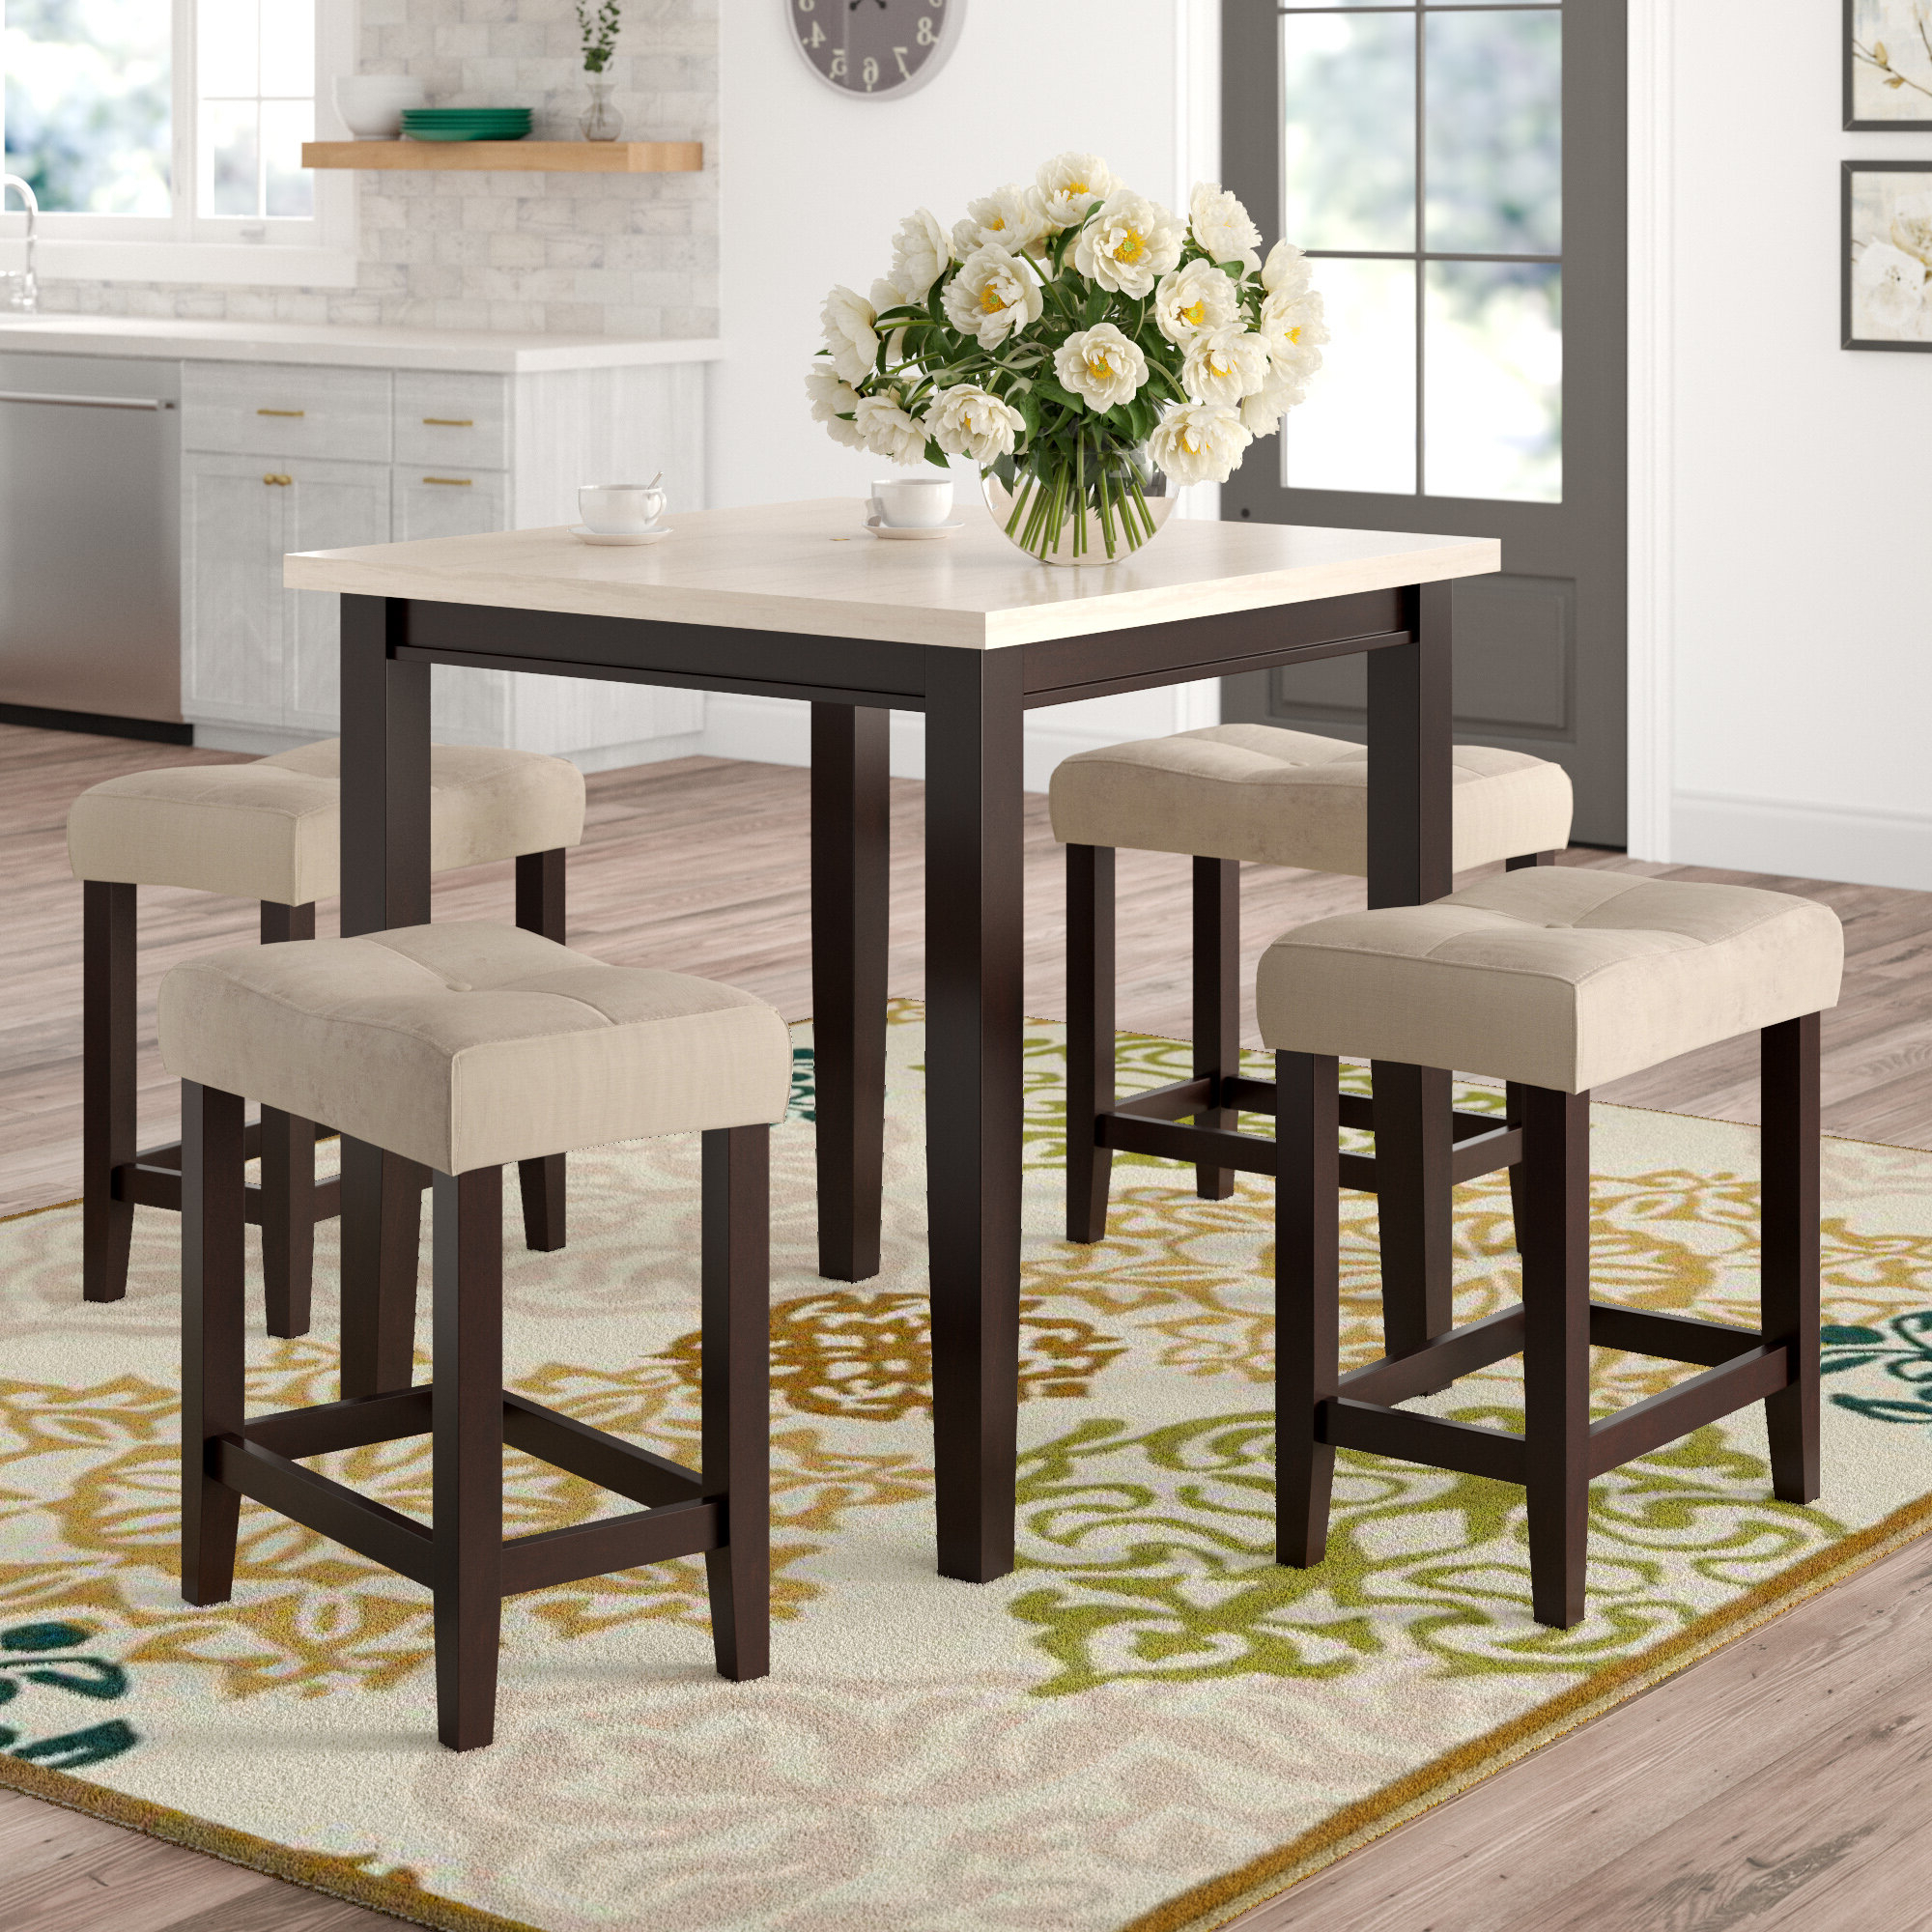 Current Winsted 4 Piece Counter Height Dining Sets With Regard To Red Barrel Studio Skeens 5 Piece Counter Height Dining Set & Reviews (View 3 of 25)